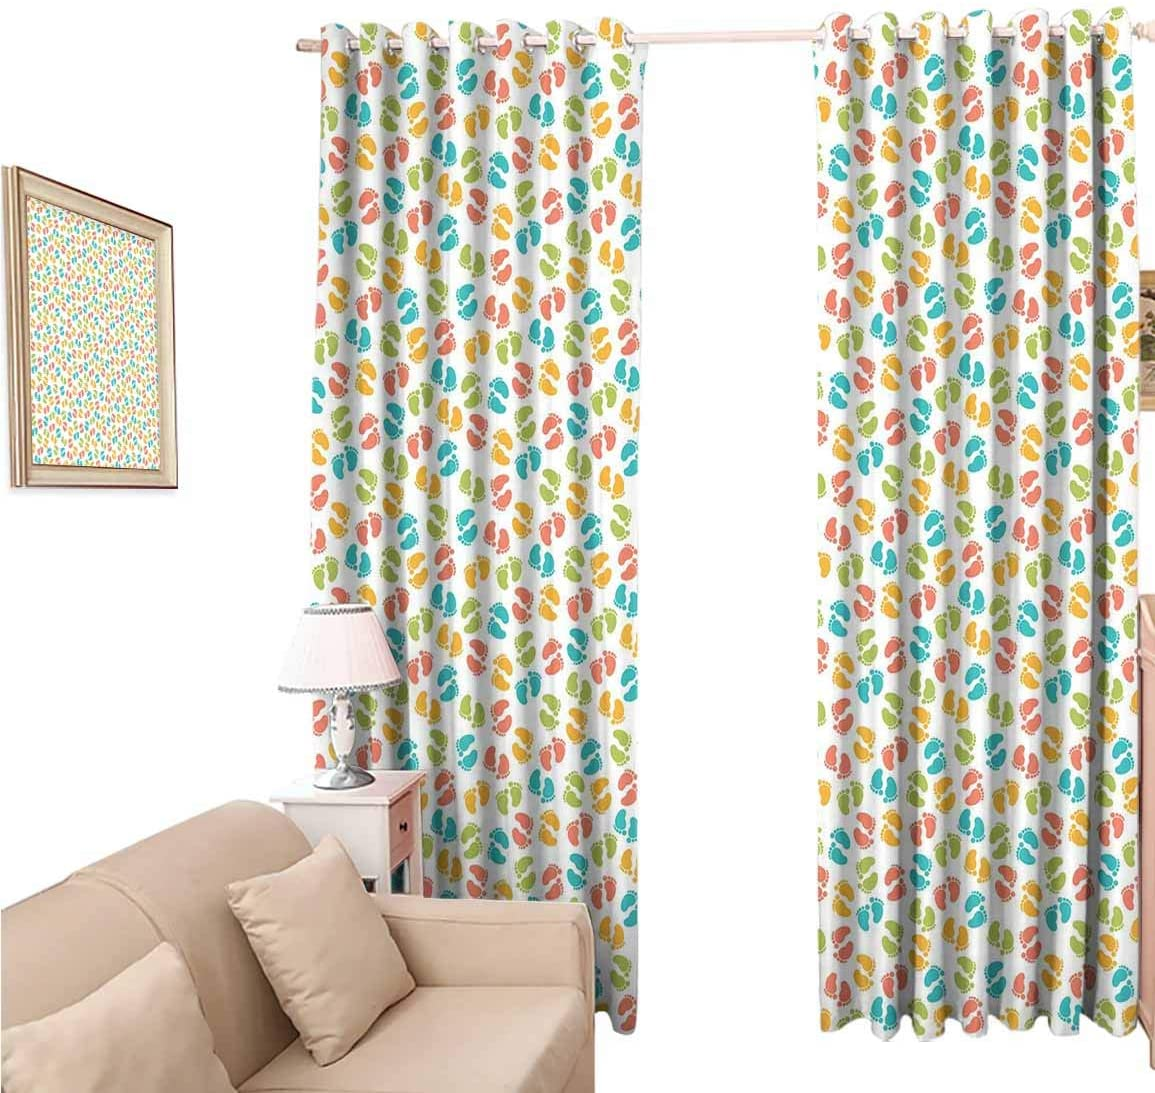 oobon Window Blackout Curtains Fabric, Baby Colorful Newborn Foots Abstract Newborn Birth Celebration, 108 Inches Long for Nursery Room, 96x108 inch